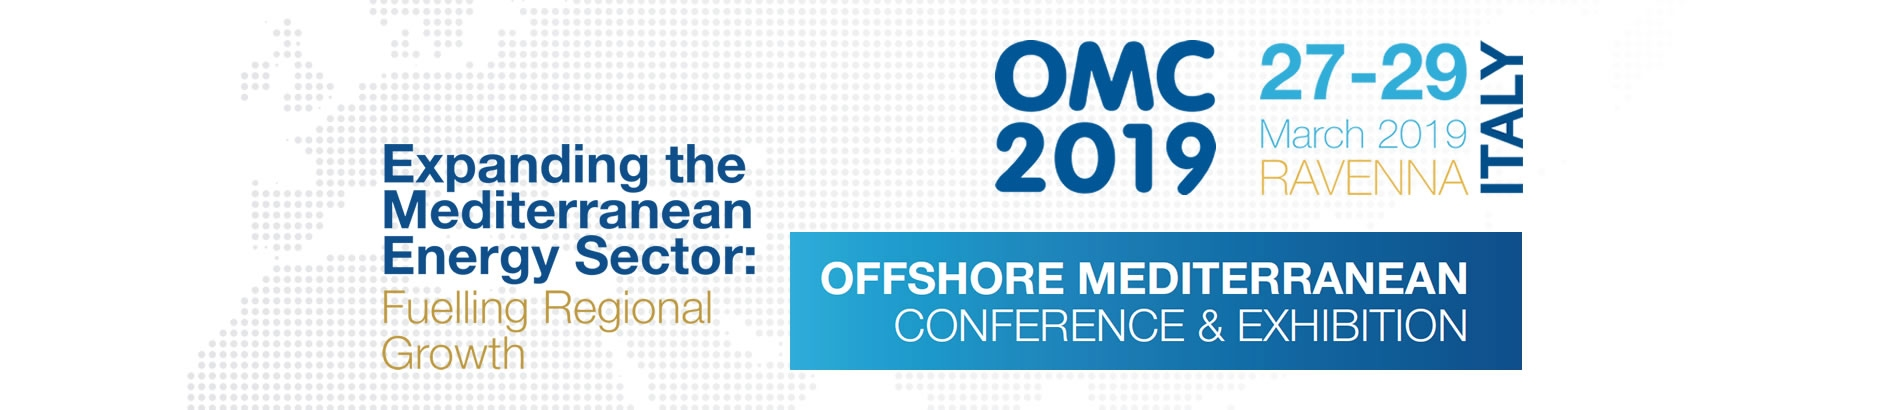 OMC 2019 - OFFSHORE MEDITERRANEAN CONFERENCE & EXHIBITION